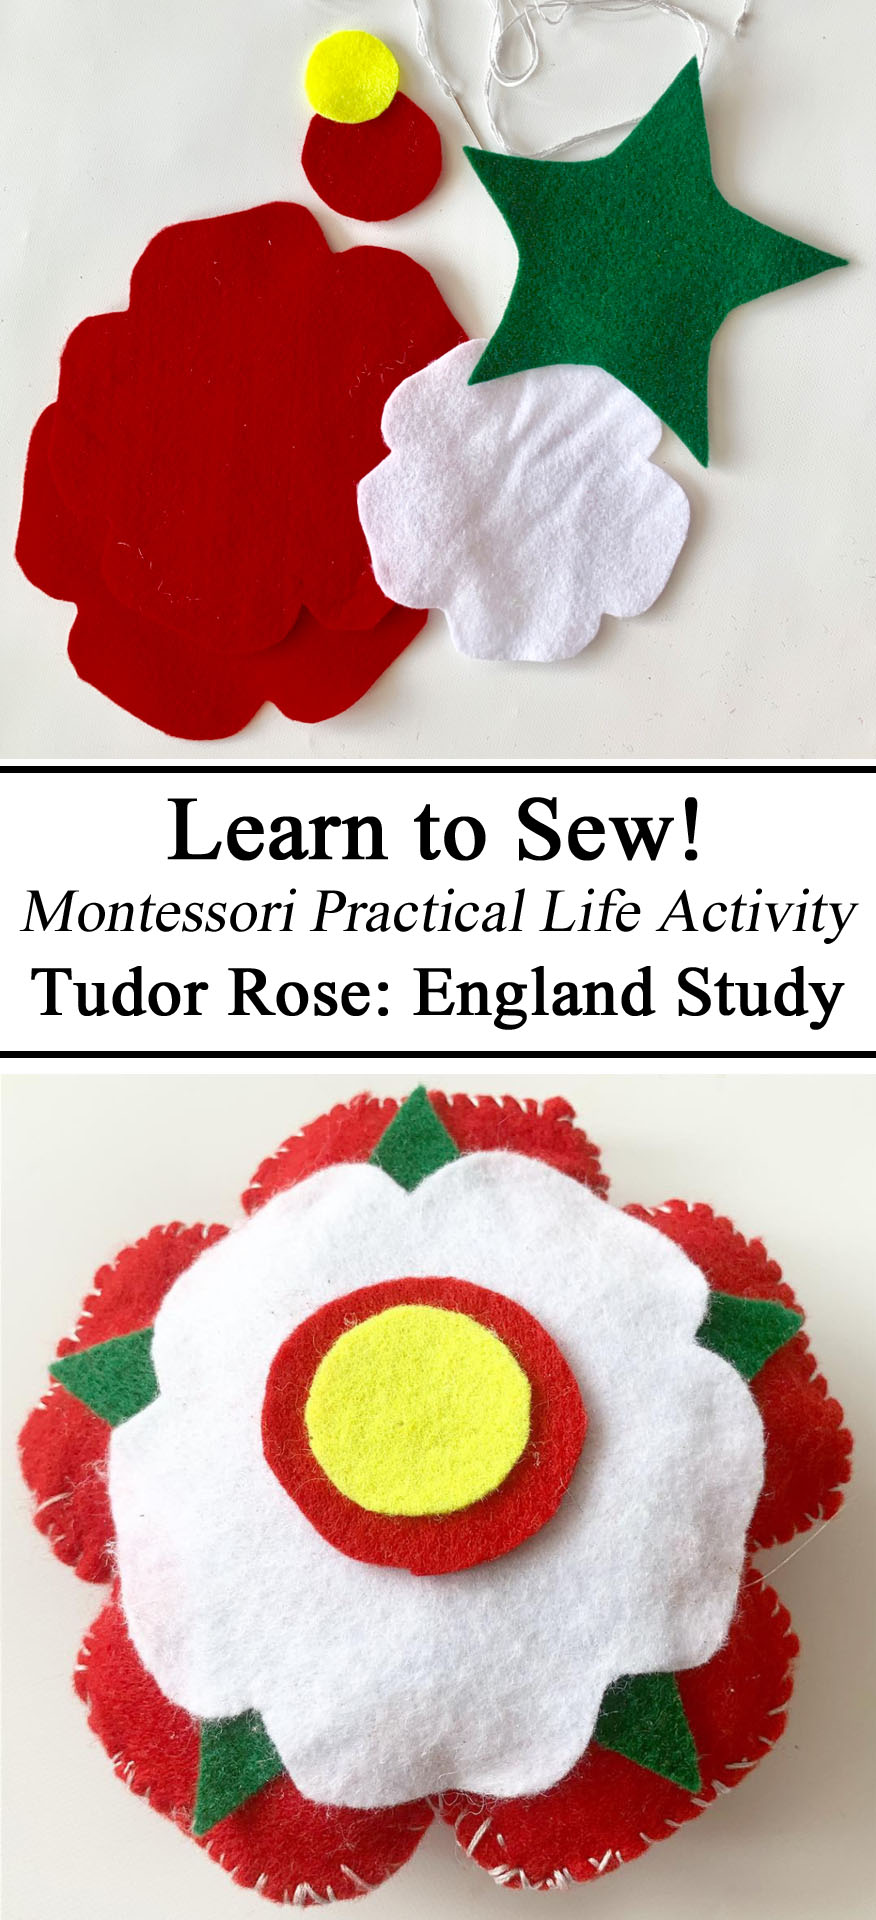 Homeschool, Homeschooling, Educational, Learn to Sew, Learning, Montessori Practical Life, Tudor Rose England History Study Unit Felt Home Economics Early Childhood STEM STEAM Unschooling, Preschool, Kindergarten, UK Great Britain Unit Study